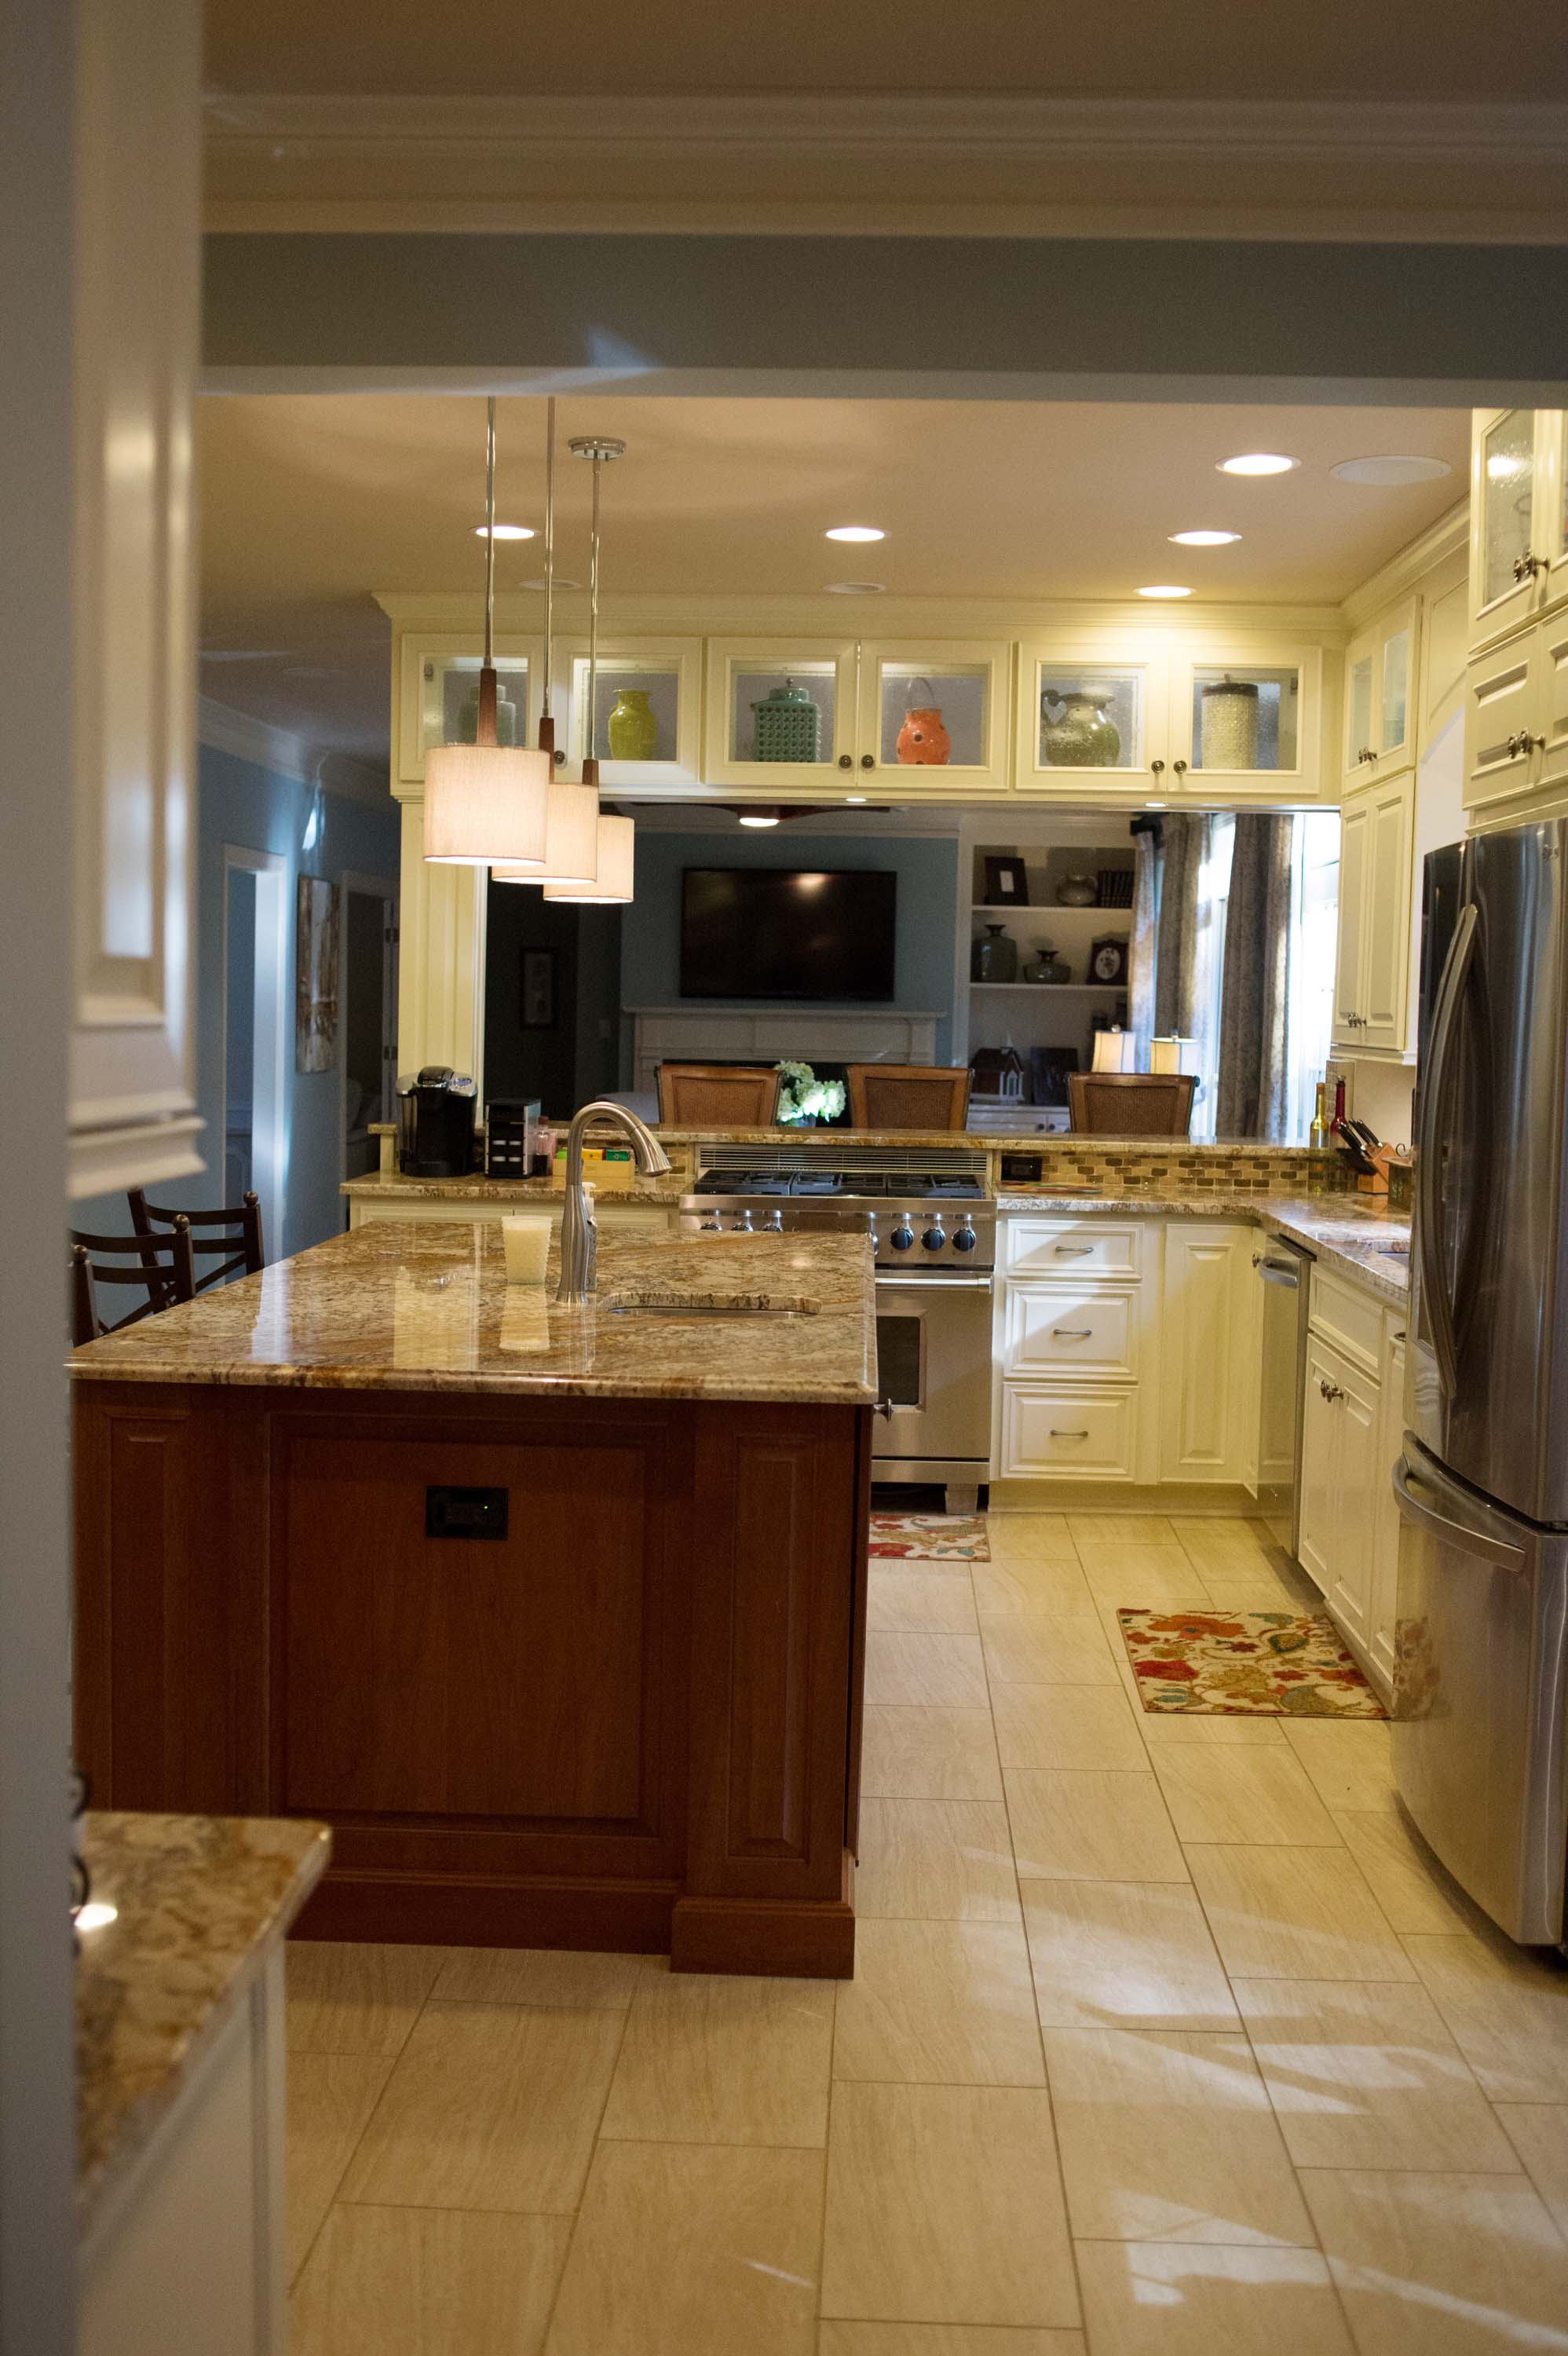 Kitchen with fridge, cabinets, wooden center island and ceramic countertops